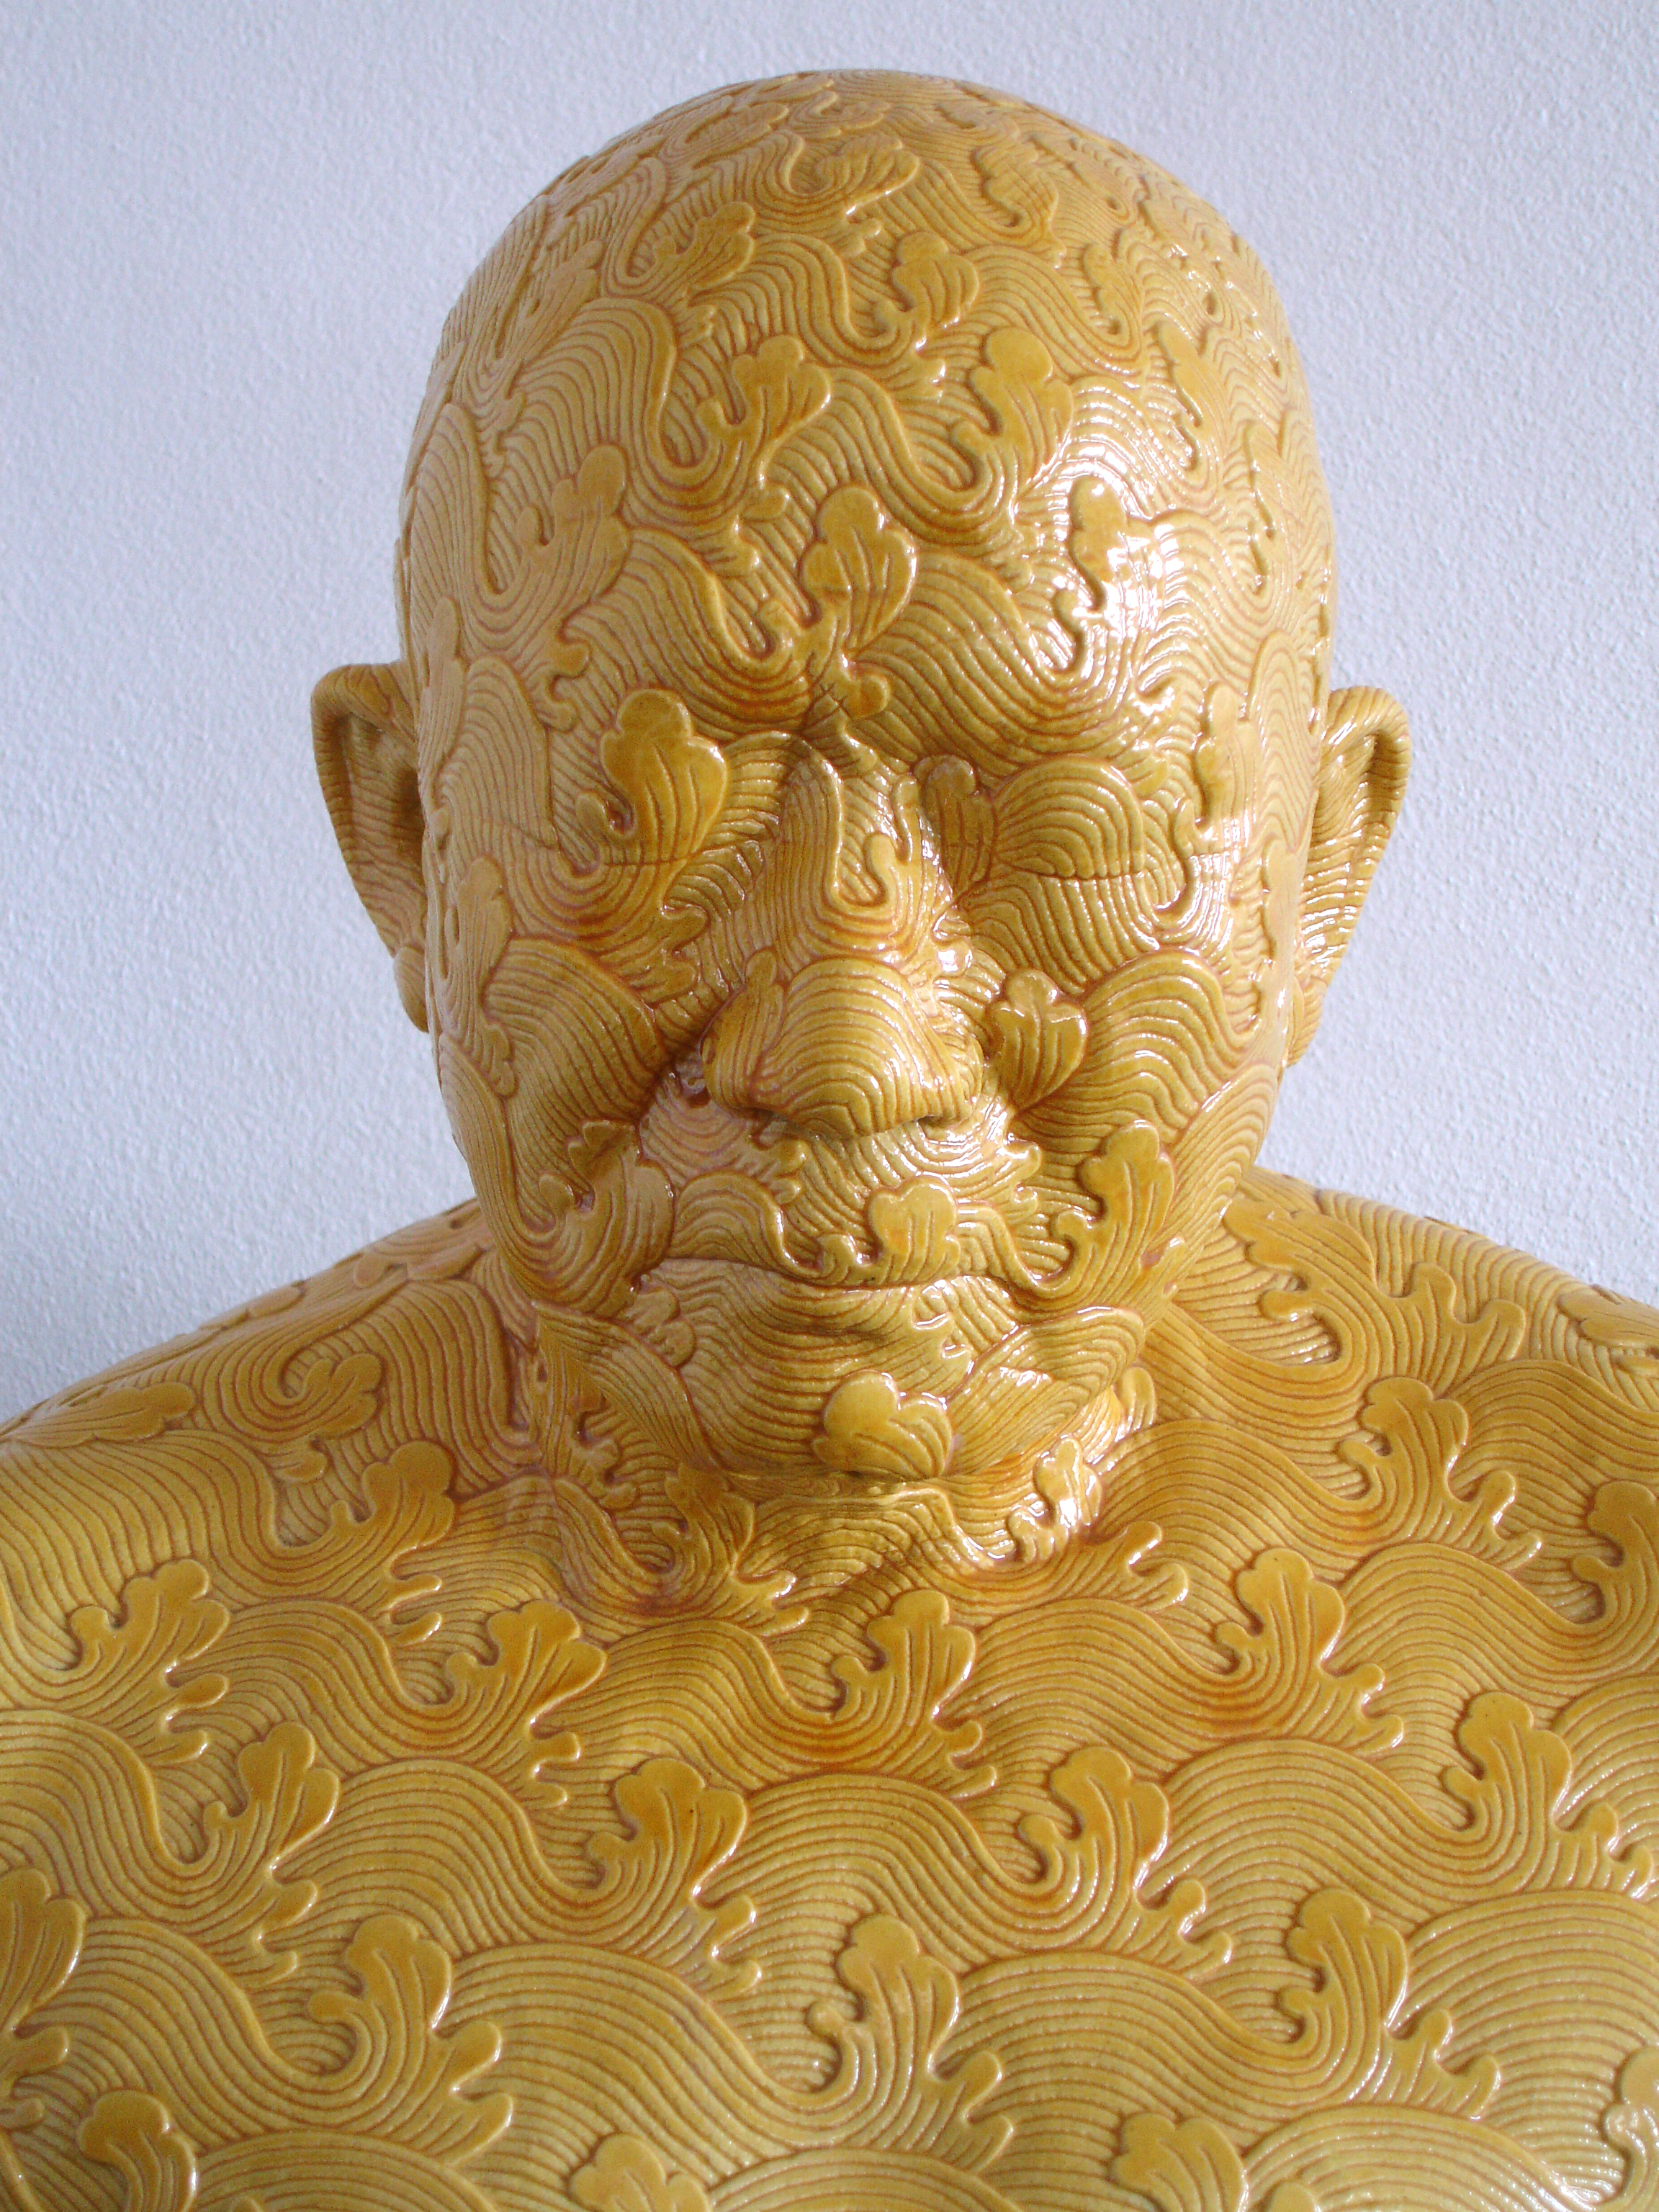 Ah Xian,  China, China – bust 45,  1999, porcelain. Courtesy of the artist.